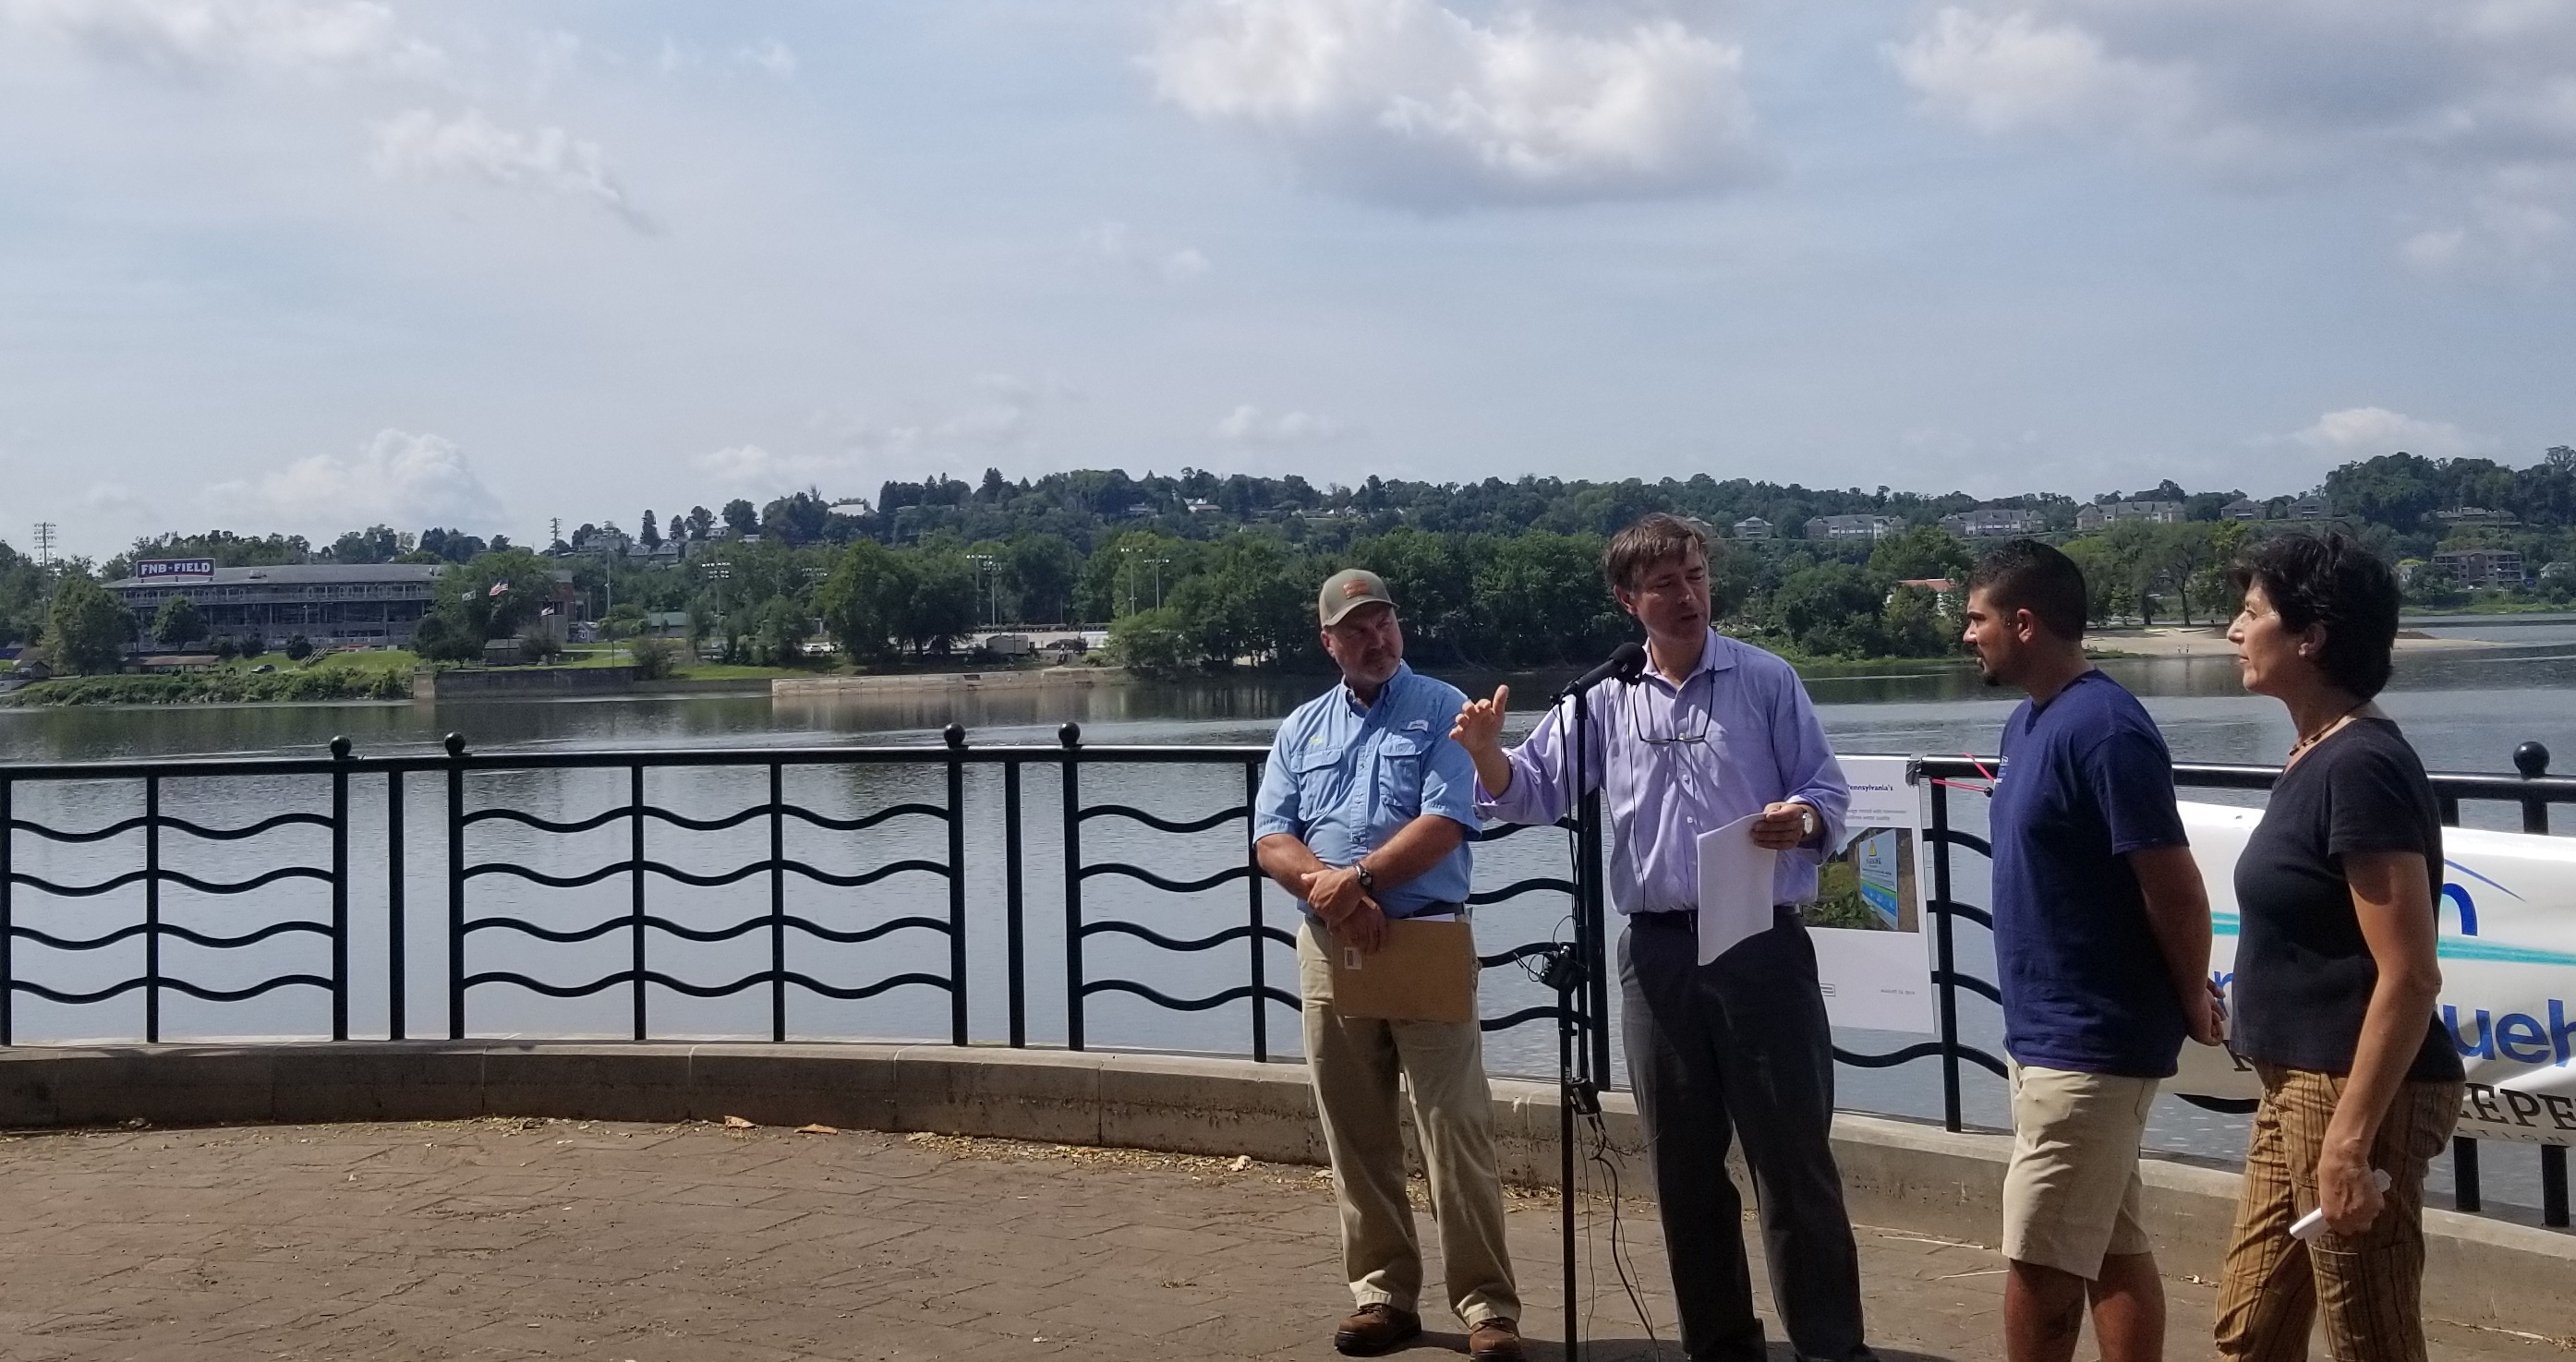 Environmentalists host conference to discuss Harrisburg's sewage-contaminated water: 'I didn't realize it was this bad'